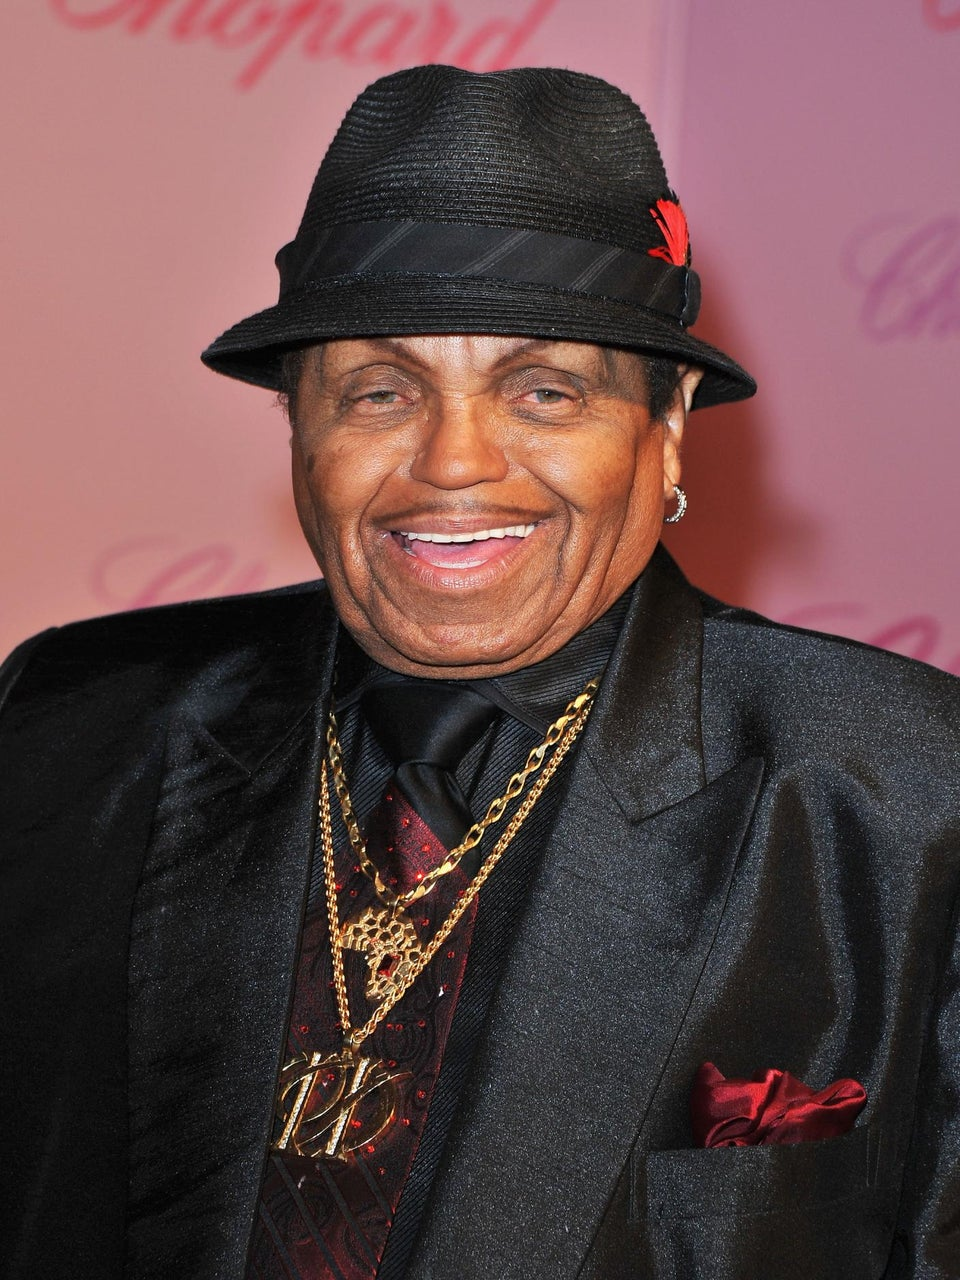 Joe Jackson Hospitalized With Terminal Cancer: 'He Doesn't Have Long'